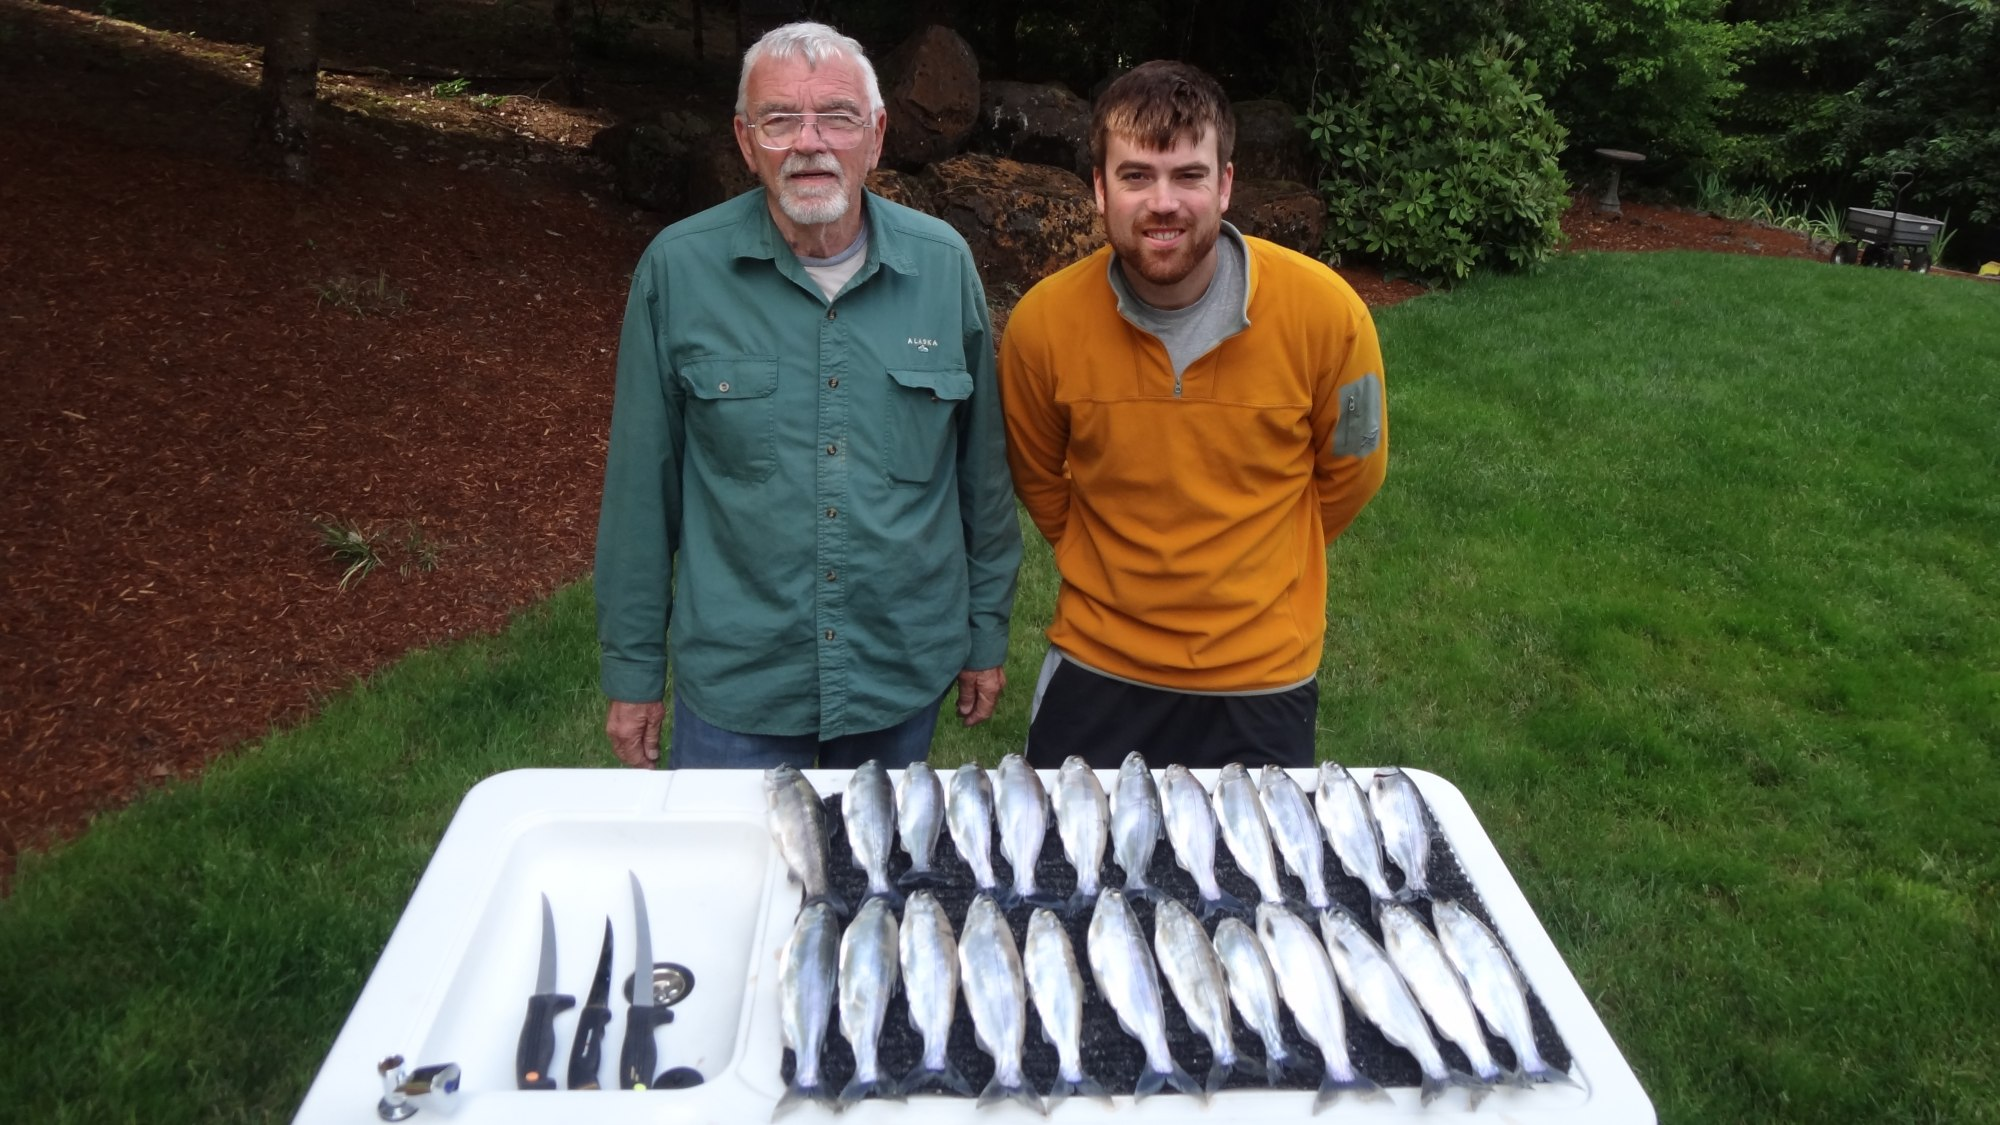 Angler Jeff Halleck and Al Gour Fish of the Week June 6,2013